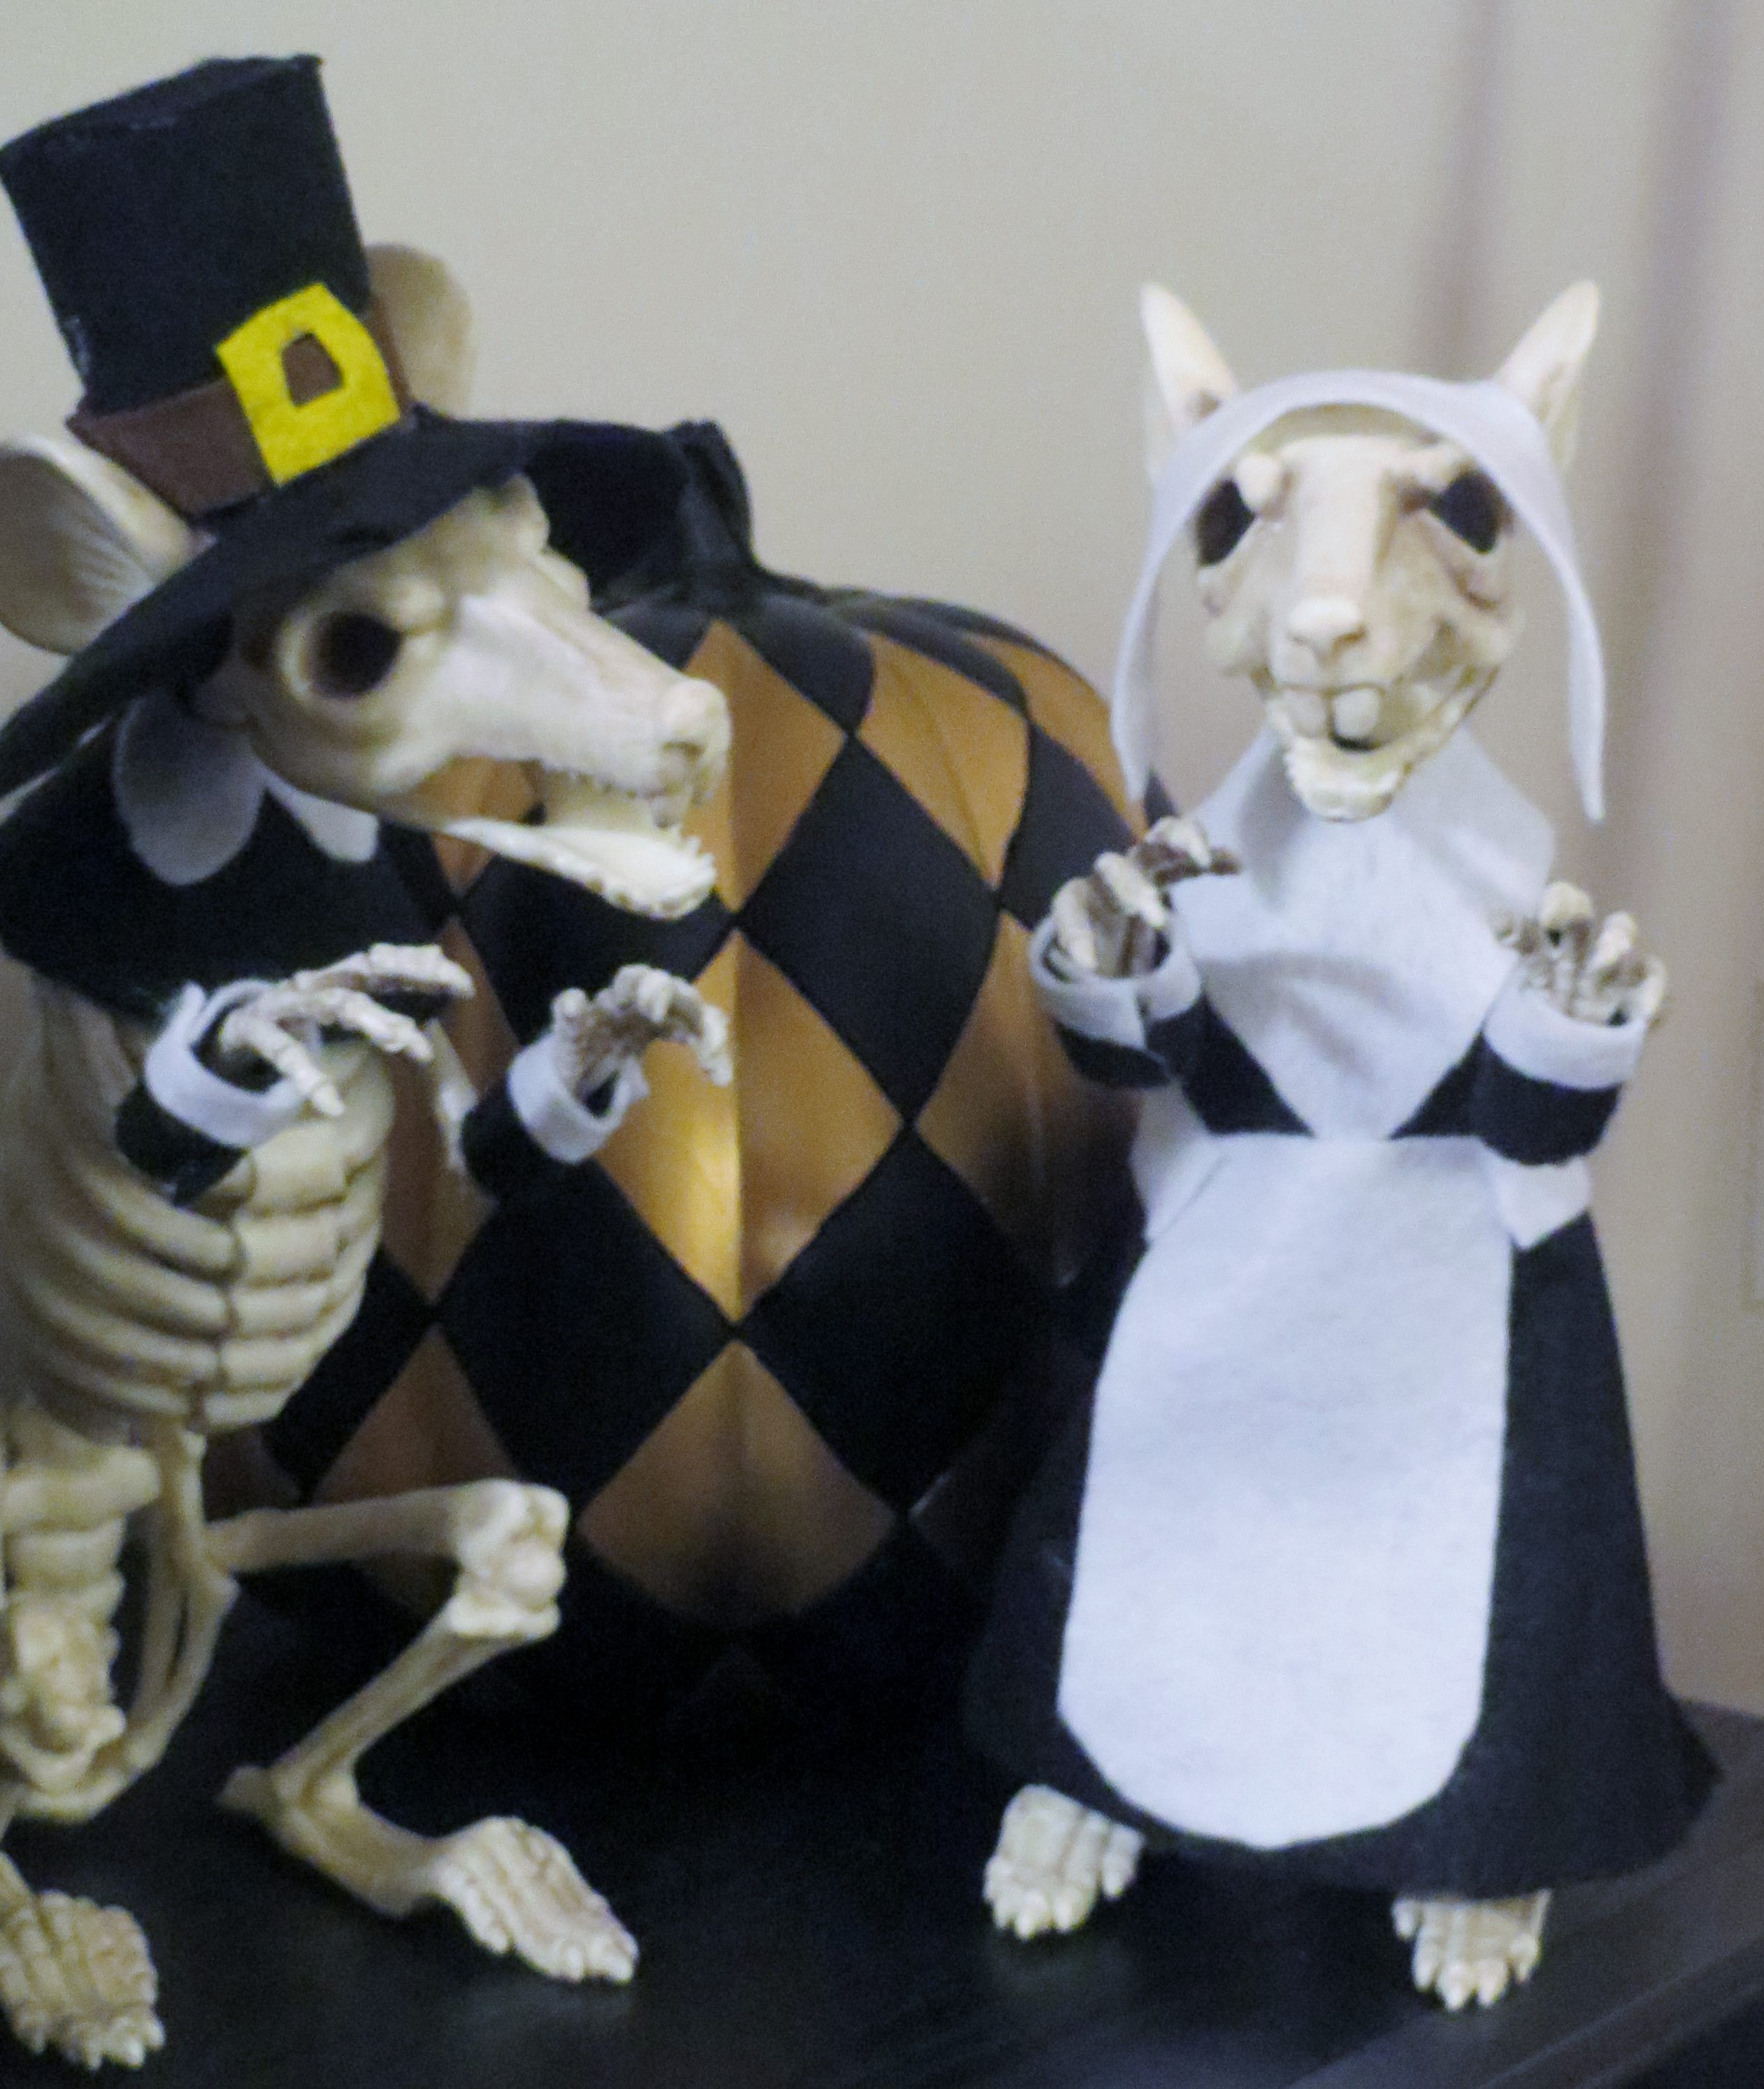 i bought the rat skeletons from grandin road on sale after halloween i love them so much i dont want to just pack them away so i made them outfits for